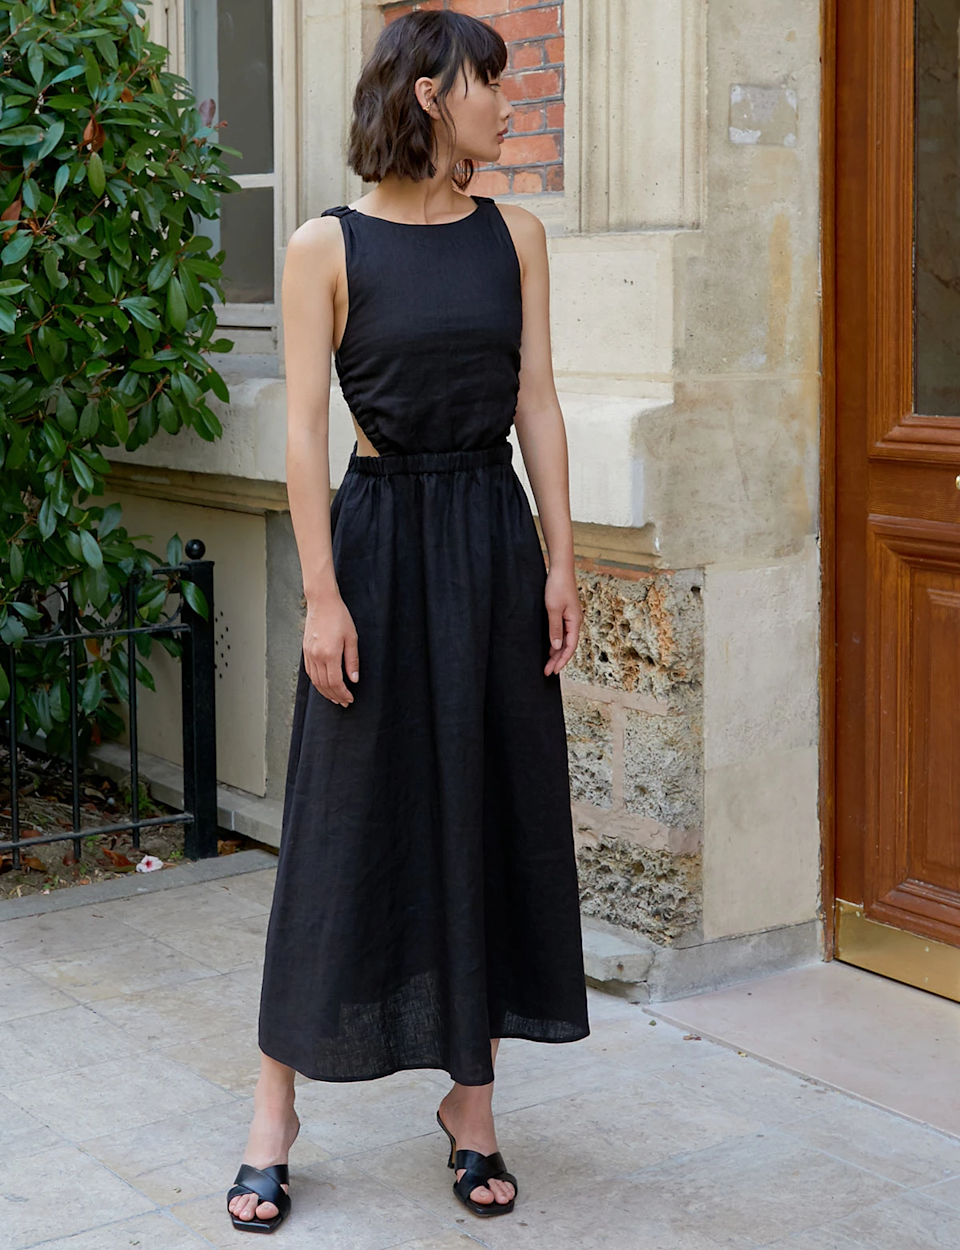 """Not pictured is the very revealing open back that makes this black linen dress an absolute ten in our books. <br> <br> <strong>Pixie Market</strong> Beatrice Black Linen Dress, $, available at <a href=""""https://go.skimresources.com/?id=30283X879131&url=https%3A%2F%2Fwww.pixiemarket.com%2Fcollections%2Fdresses%2Fproducts%2Fbeatrice-black-linen-dress"""" rel=""""nofollow noopener"""" target=""""_blank"""" data-ylk=""""slk:Pixie Market"""" class=""""link rapid-noclick-resp"""">Pixie Market</a>"""